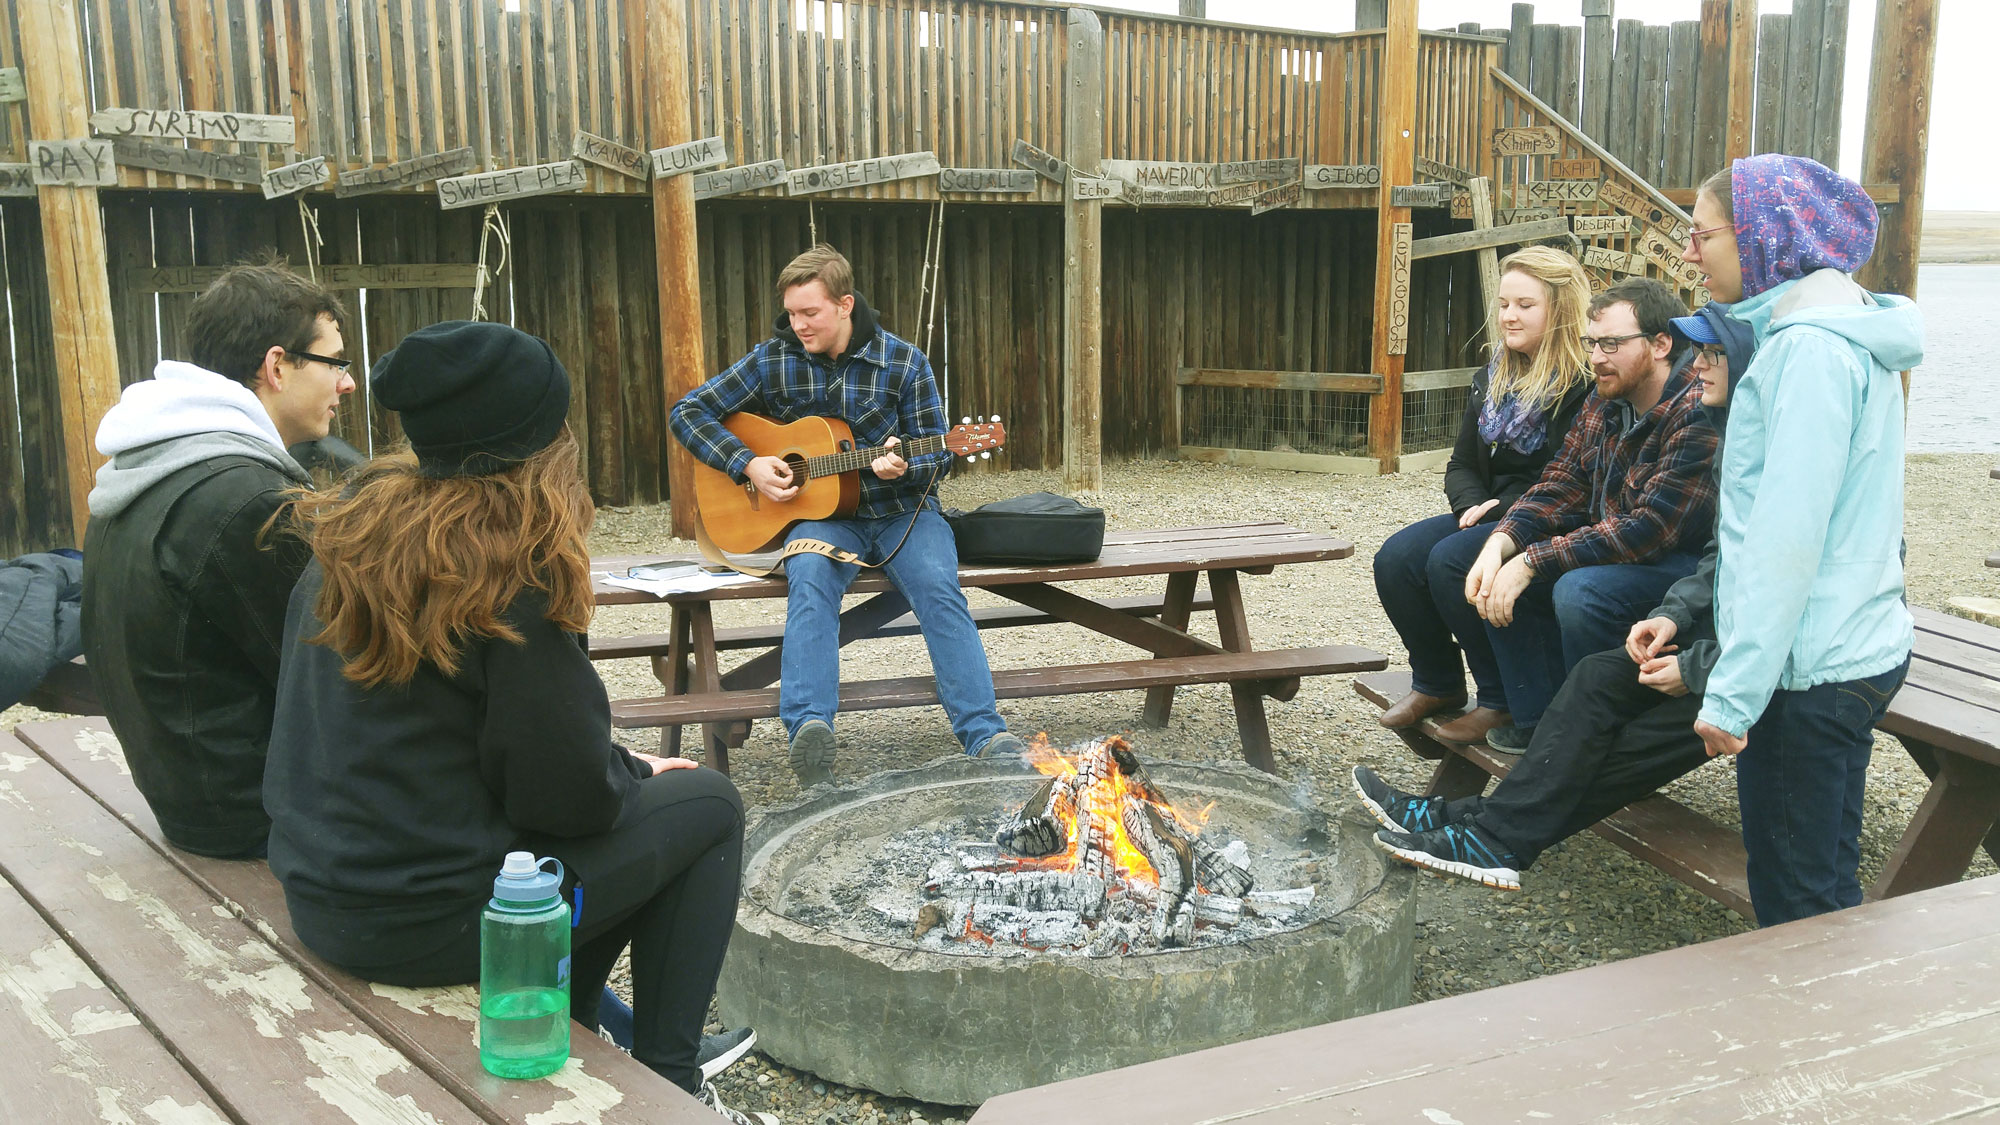 University of Lethbridge students sitting around a camp fire